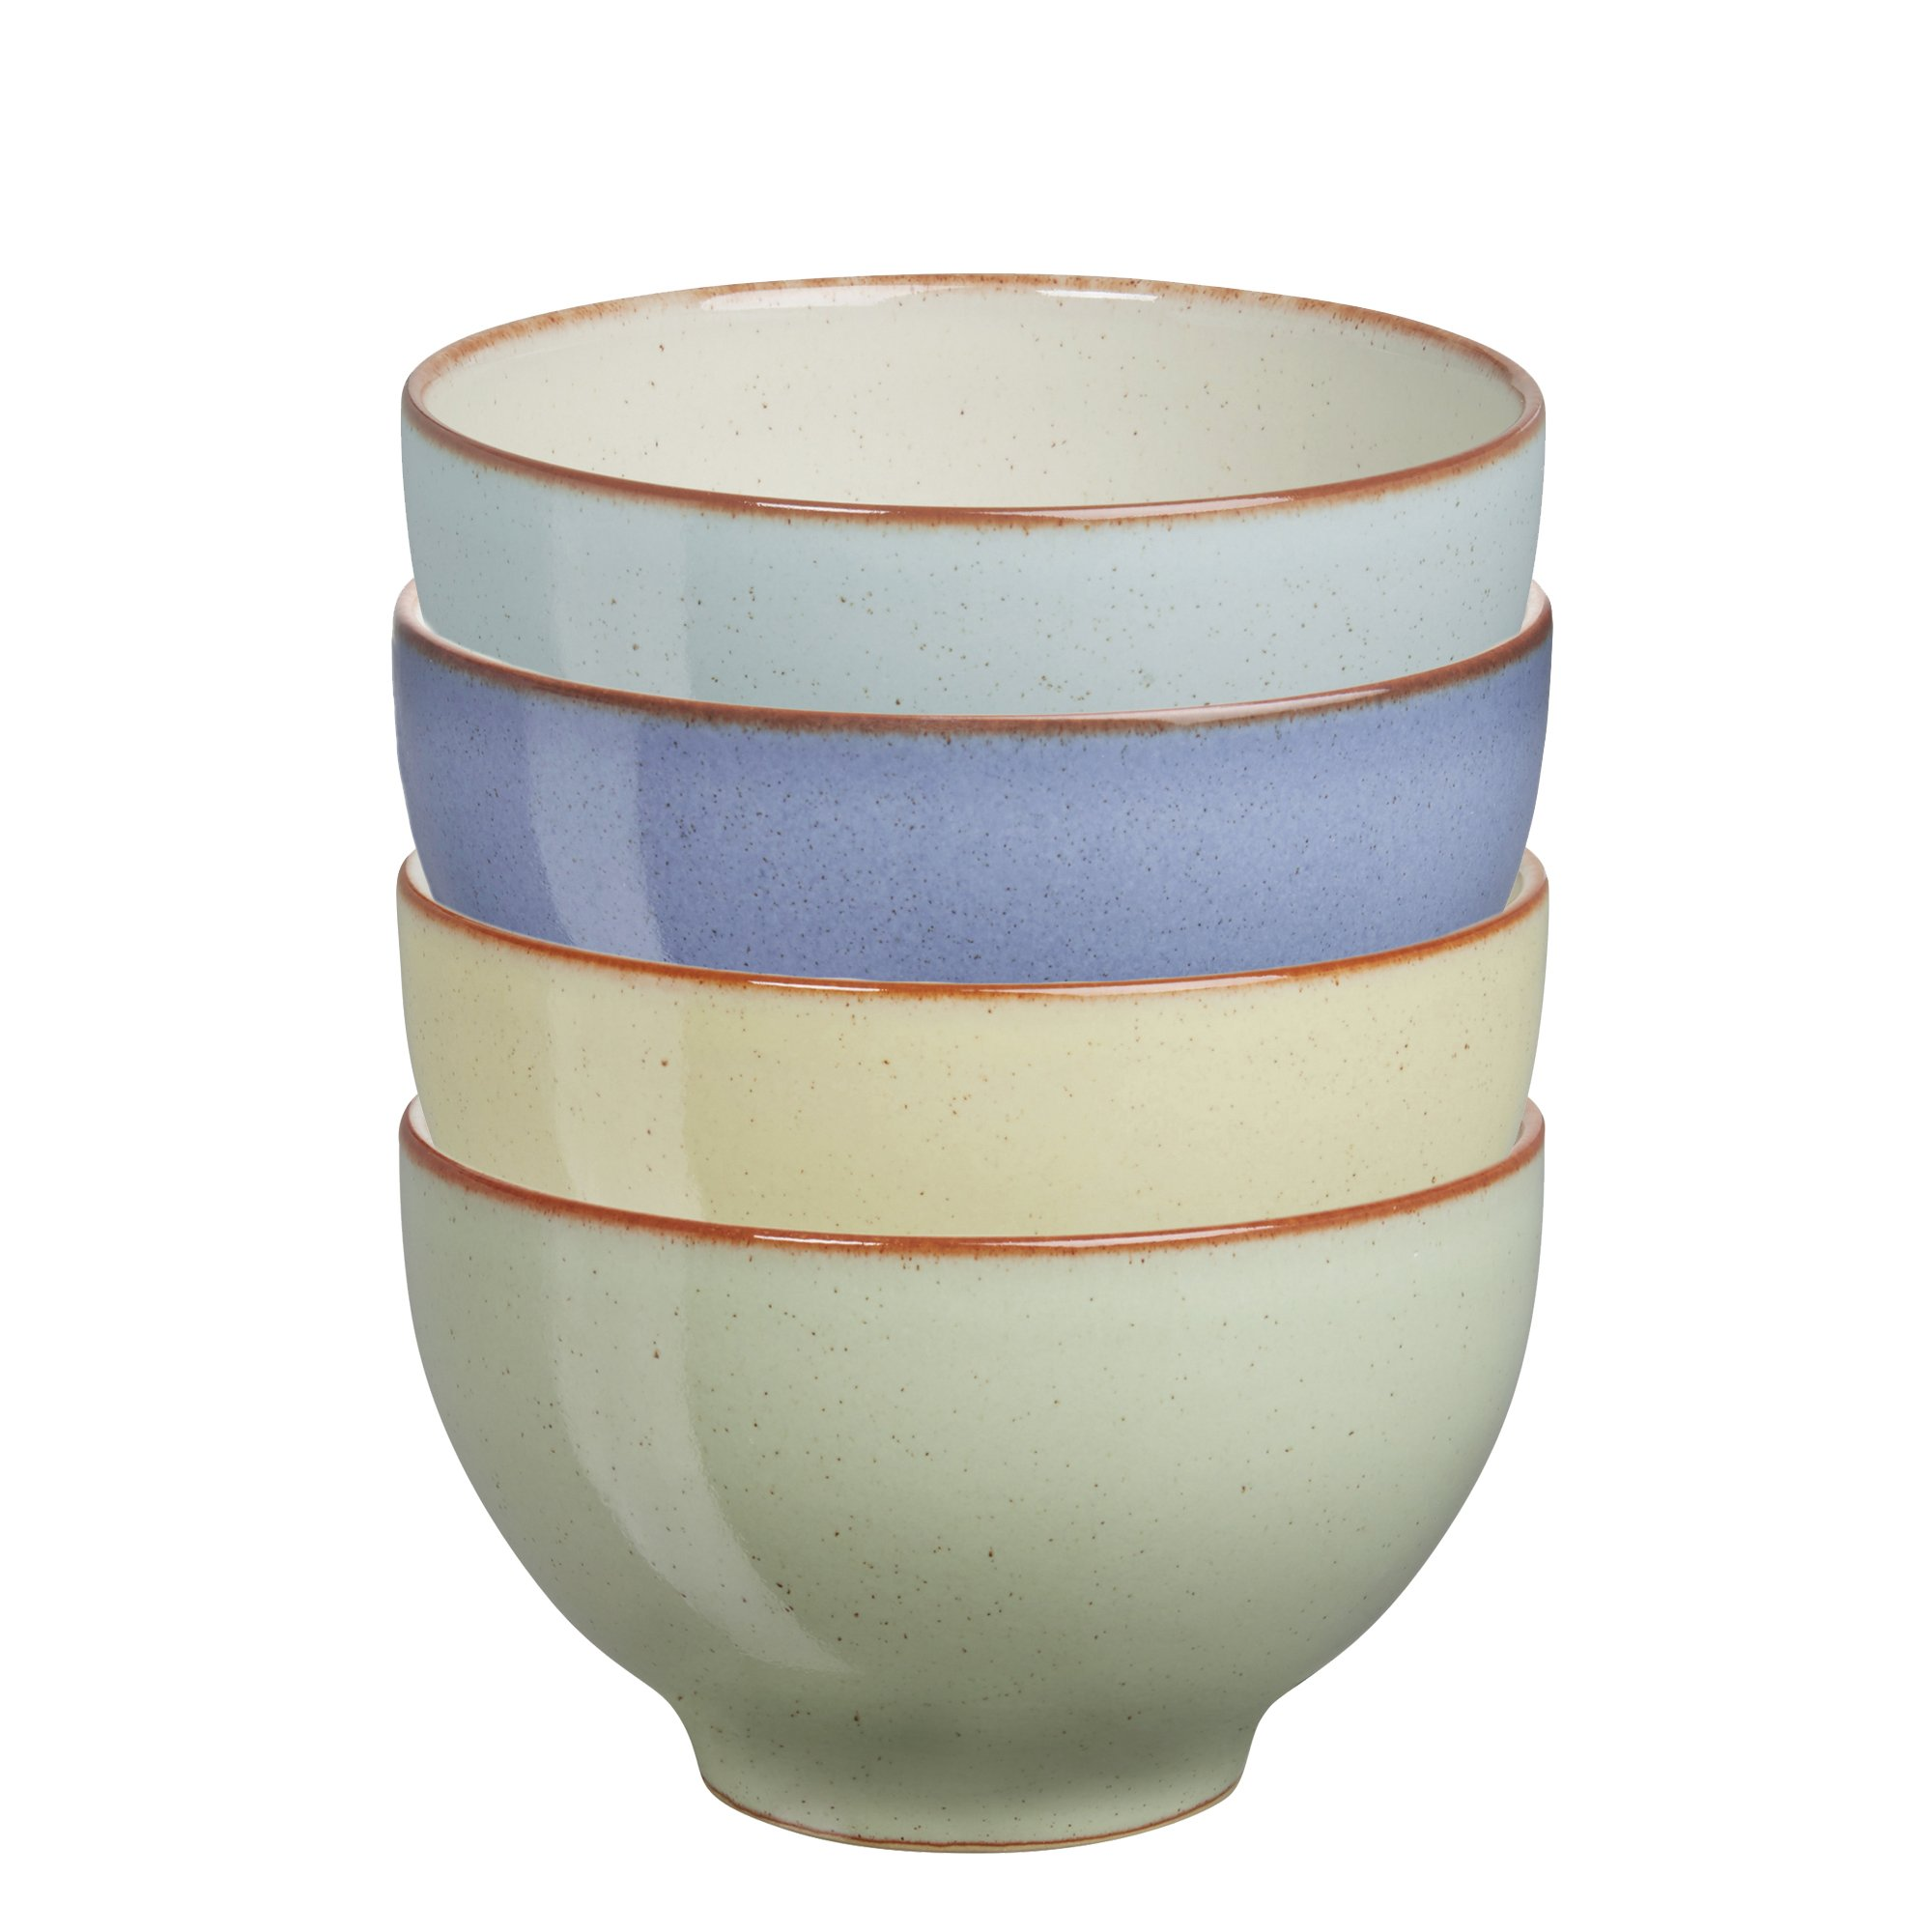 Denby USA Heritage Assorted Small Bowls (Set of 4), Multicolor